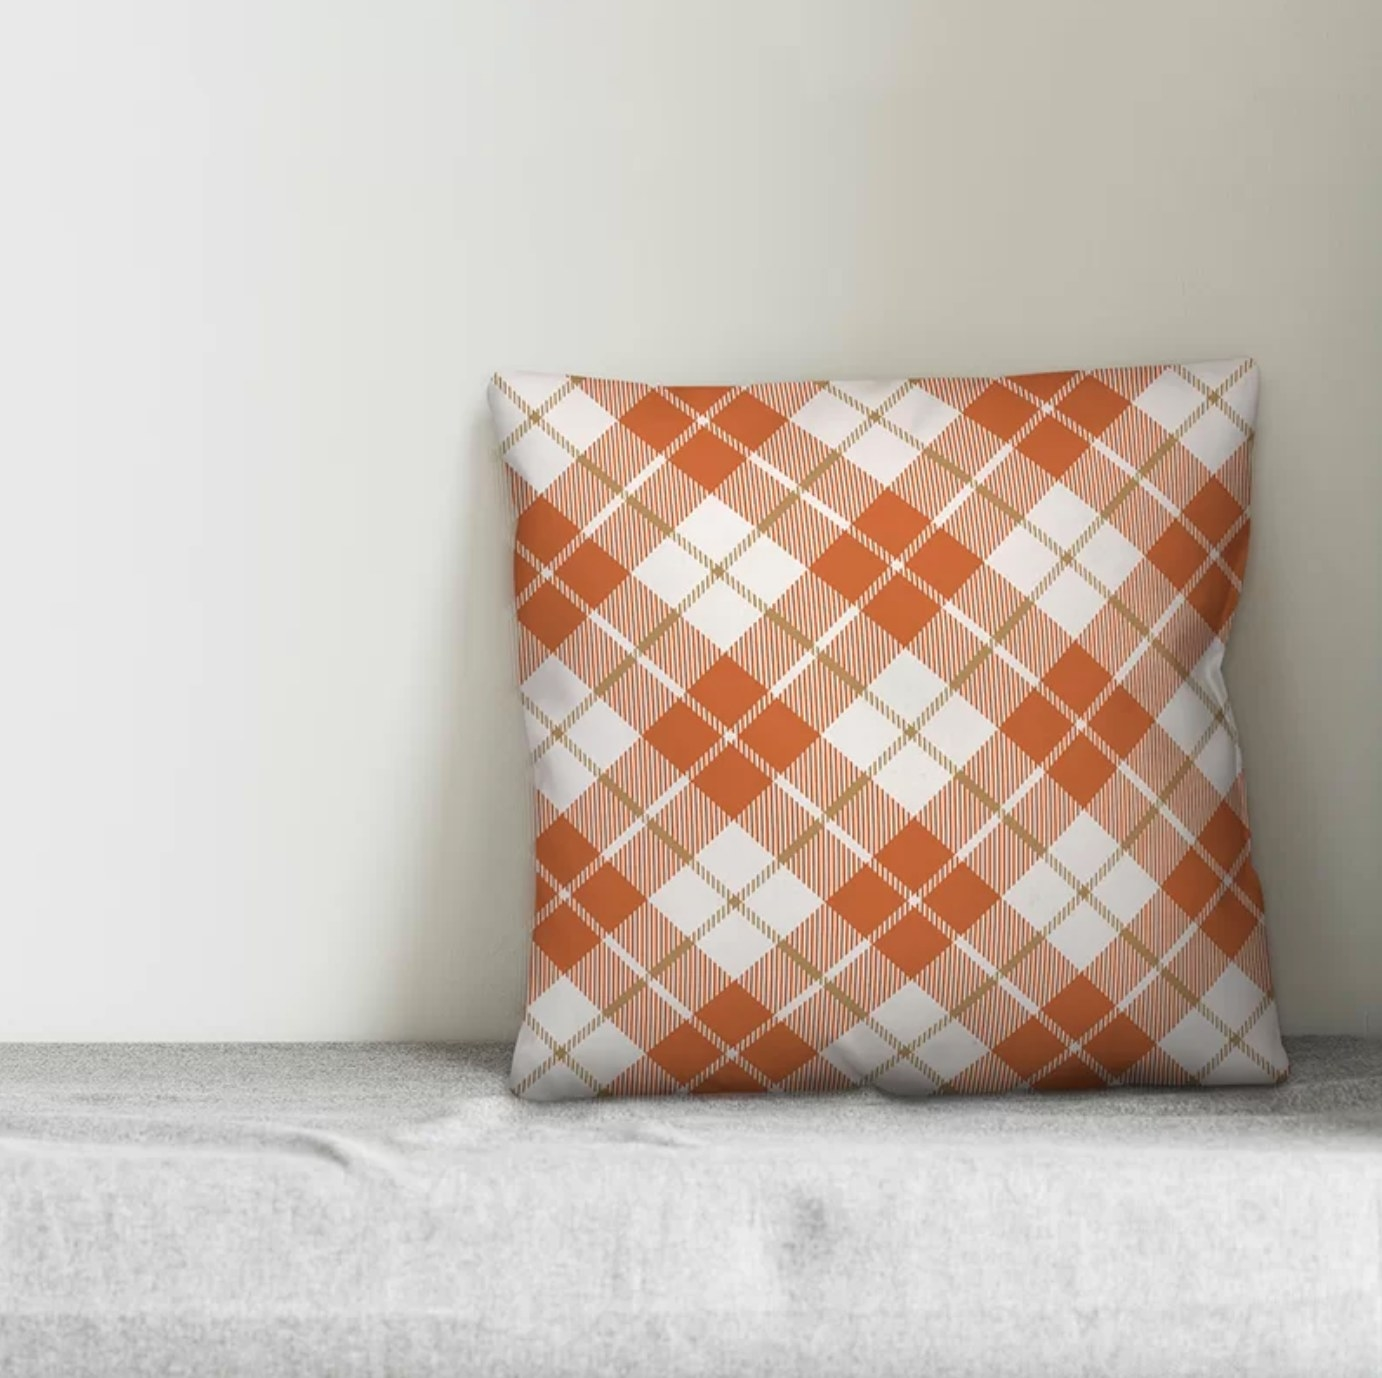 The plaid throw pillow in orange and white